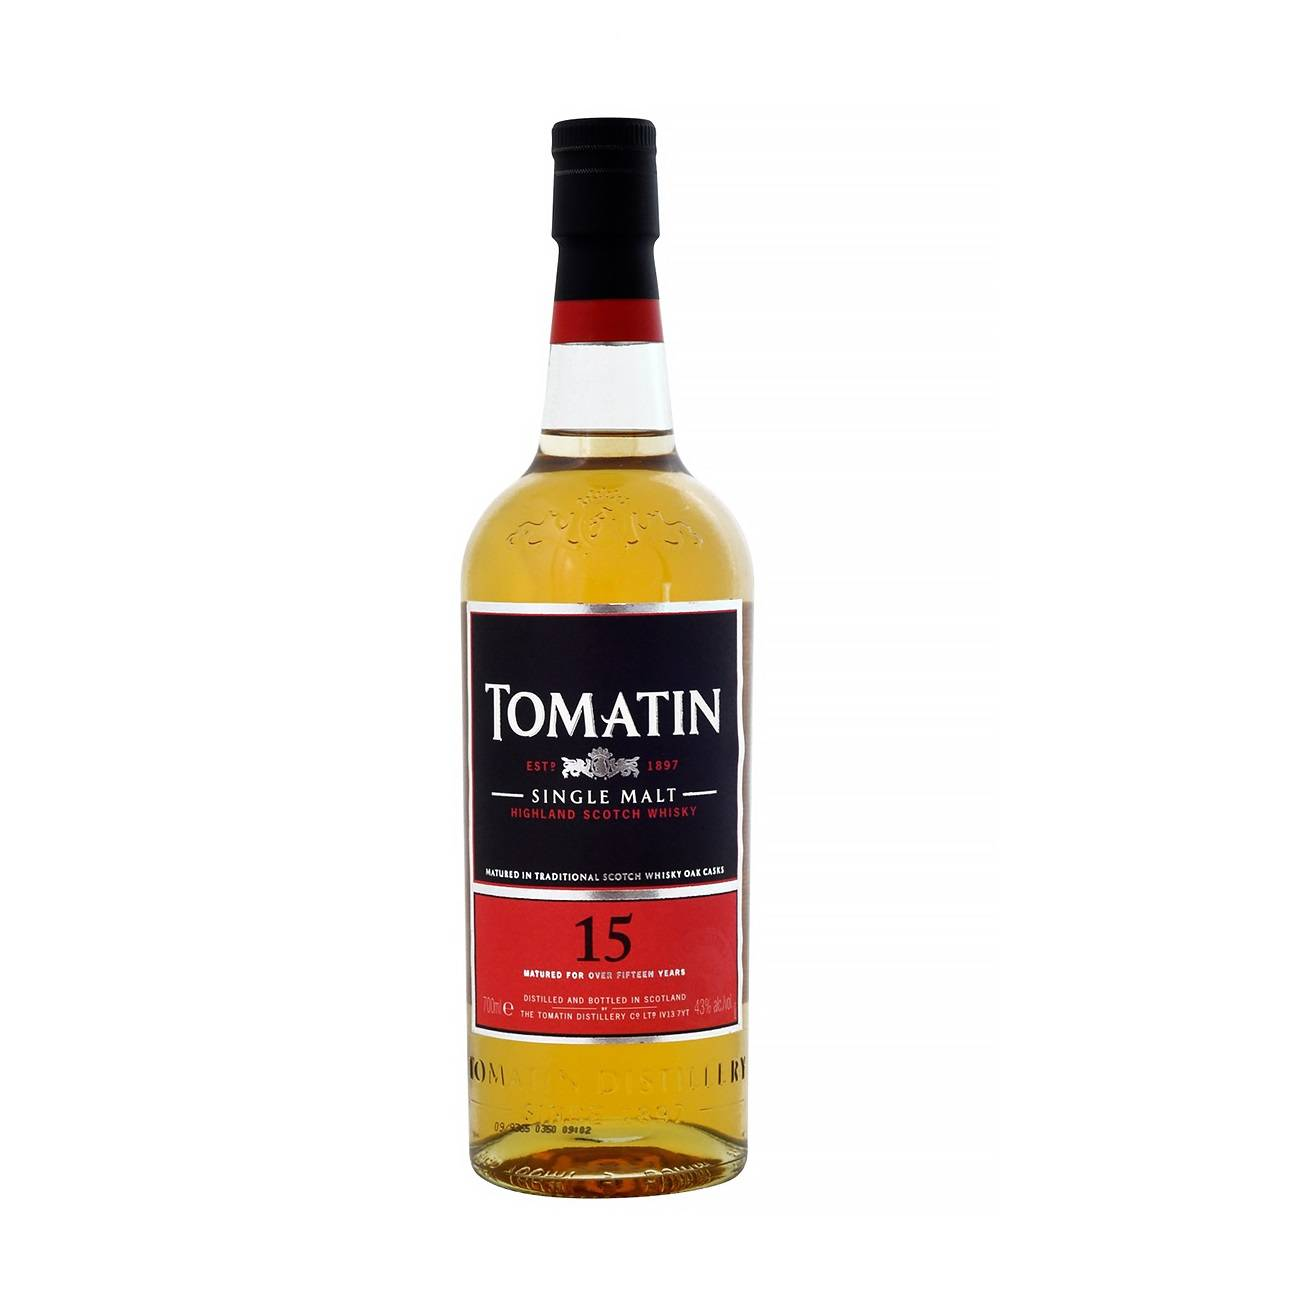 Whisky scotian, 15Y 700ml, Tomatin